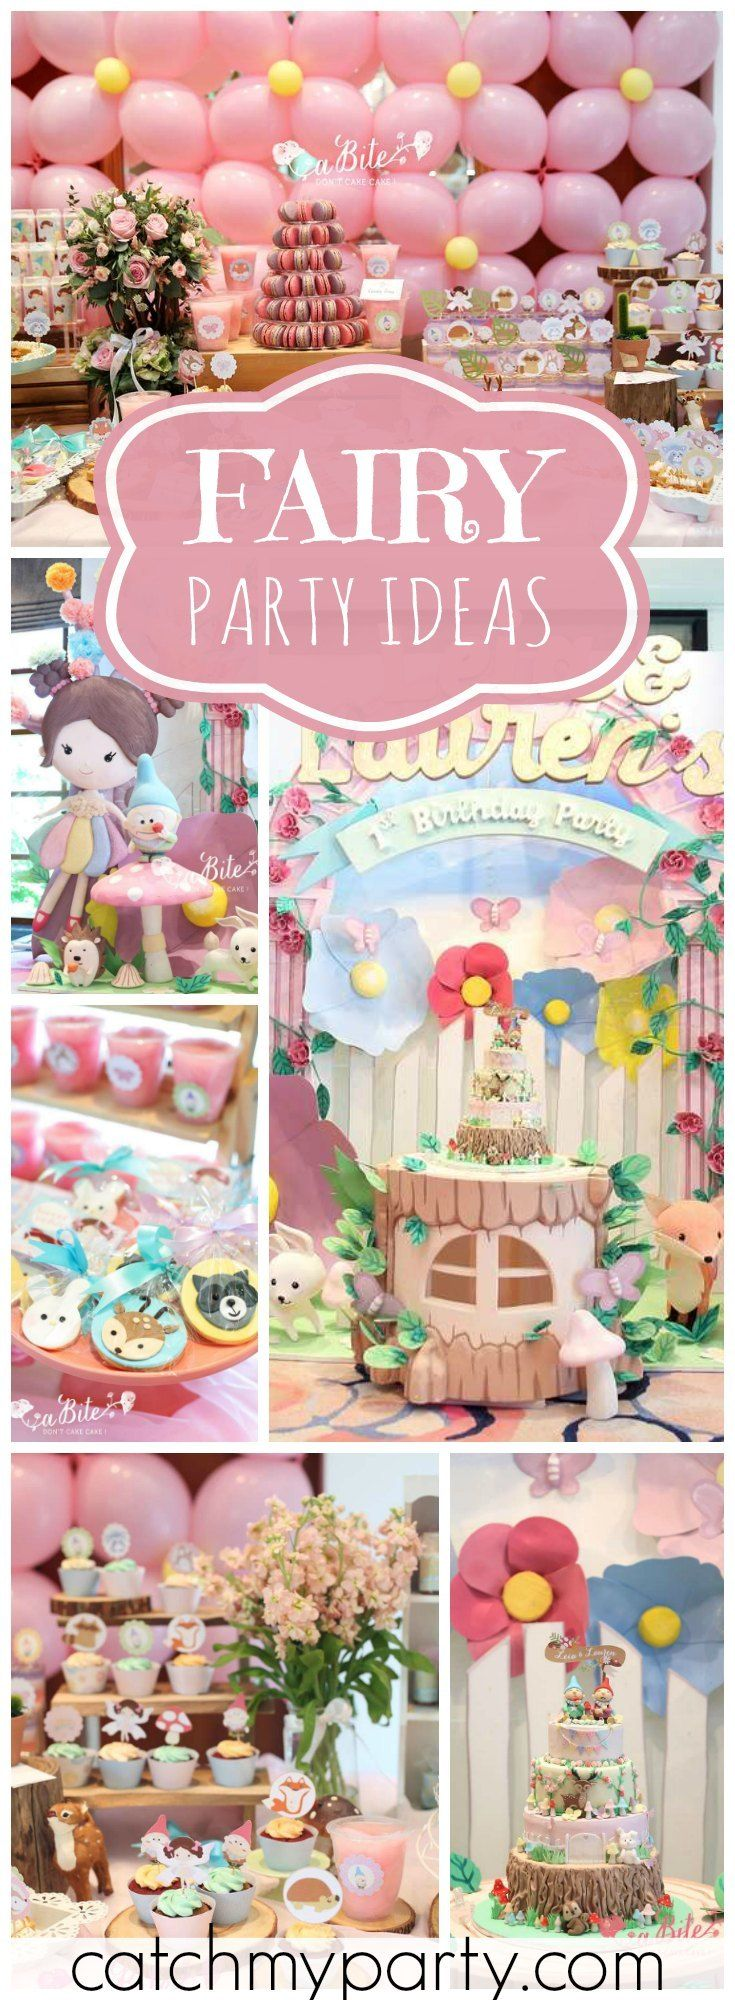 What an incredible garden fairy girl birthday party! See more party ideas at Catchmyparty.com!